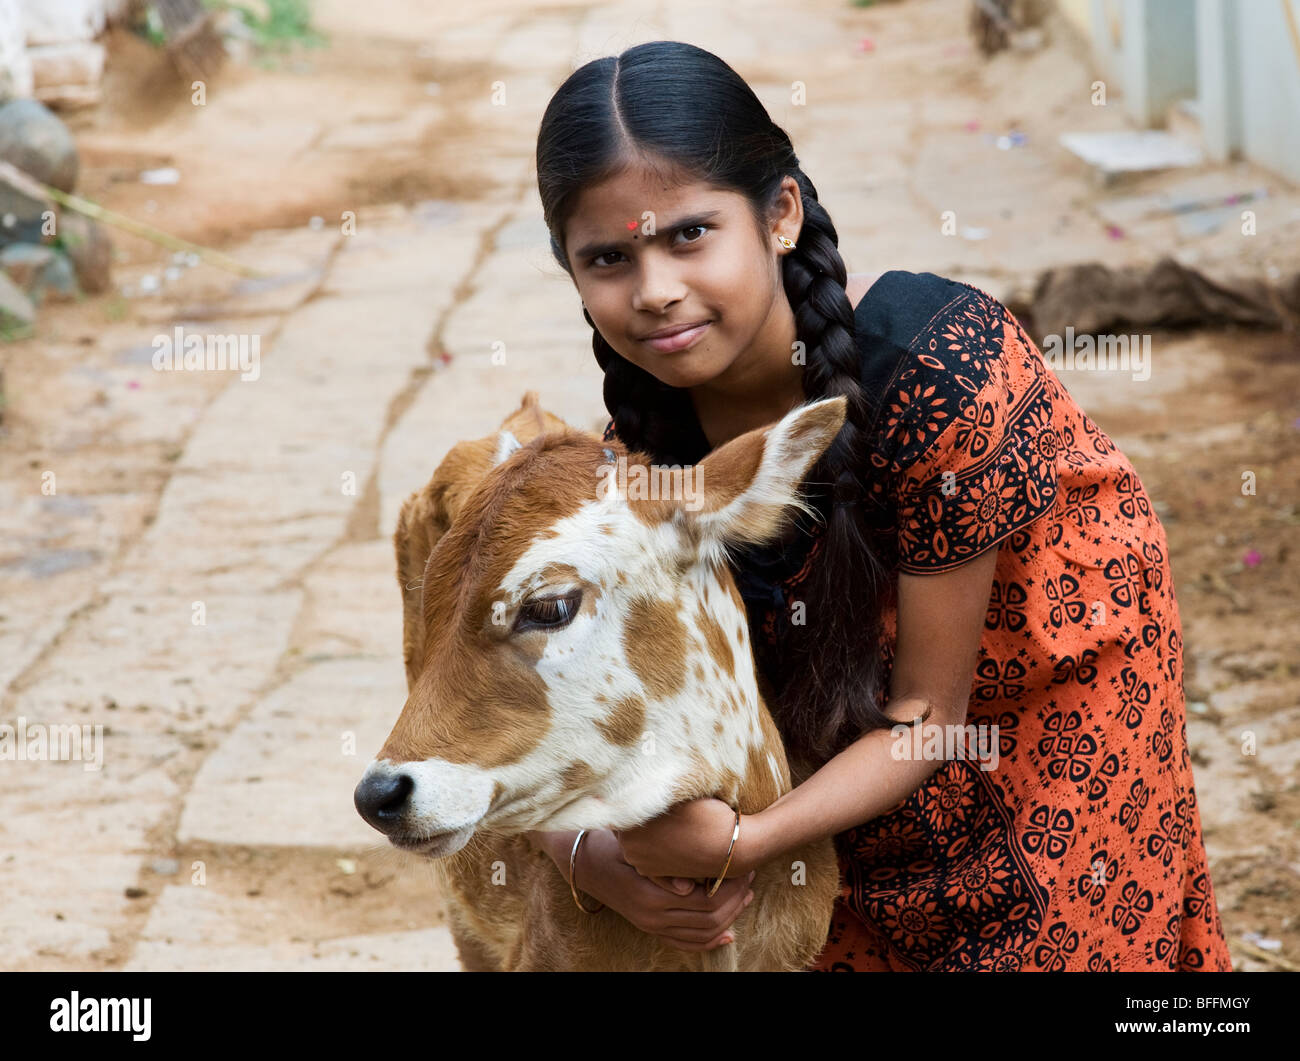 indian village girl stock photos & indian village girl stock images